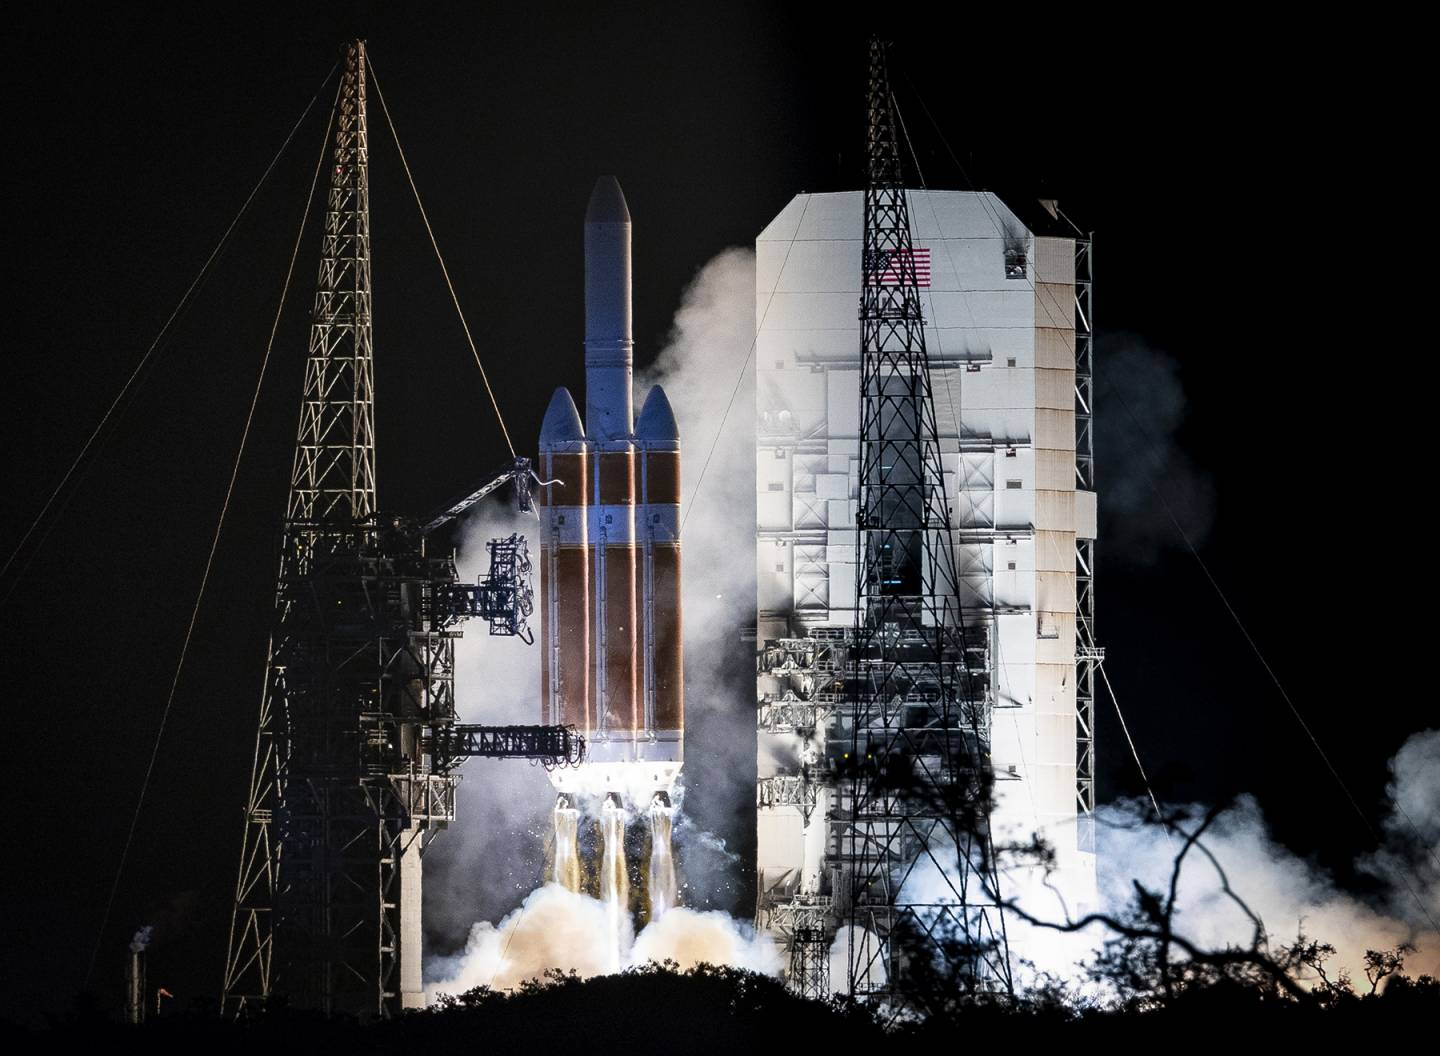 Delta IV Heavy rocket lifts off